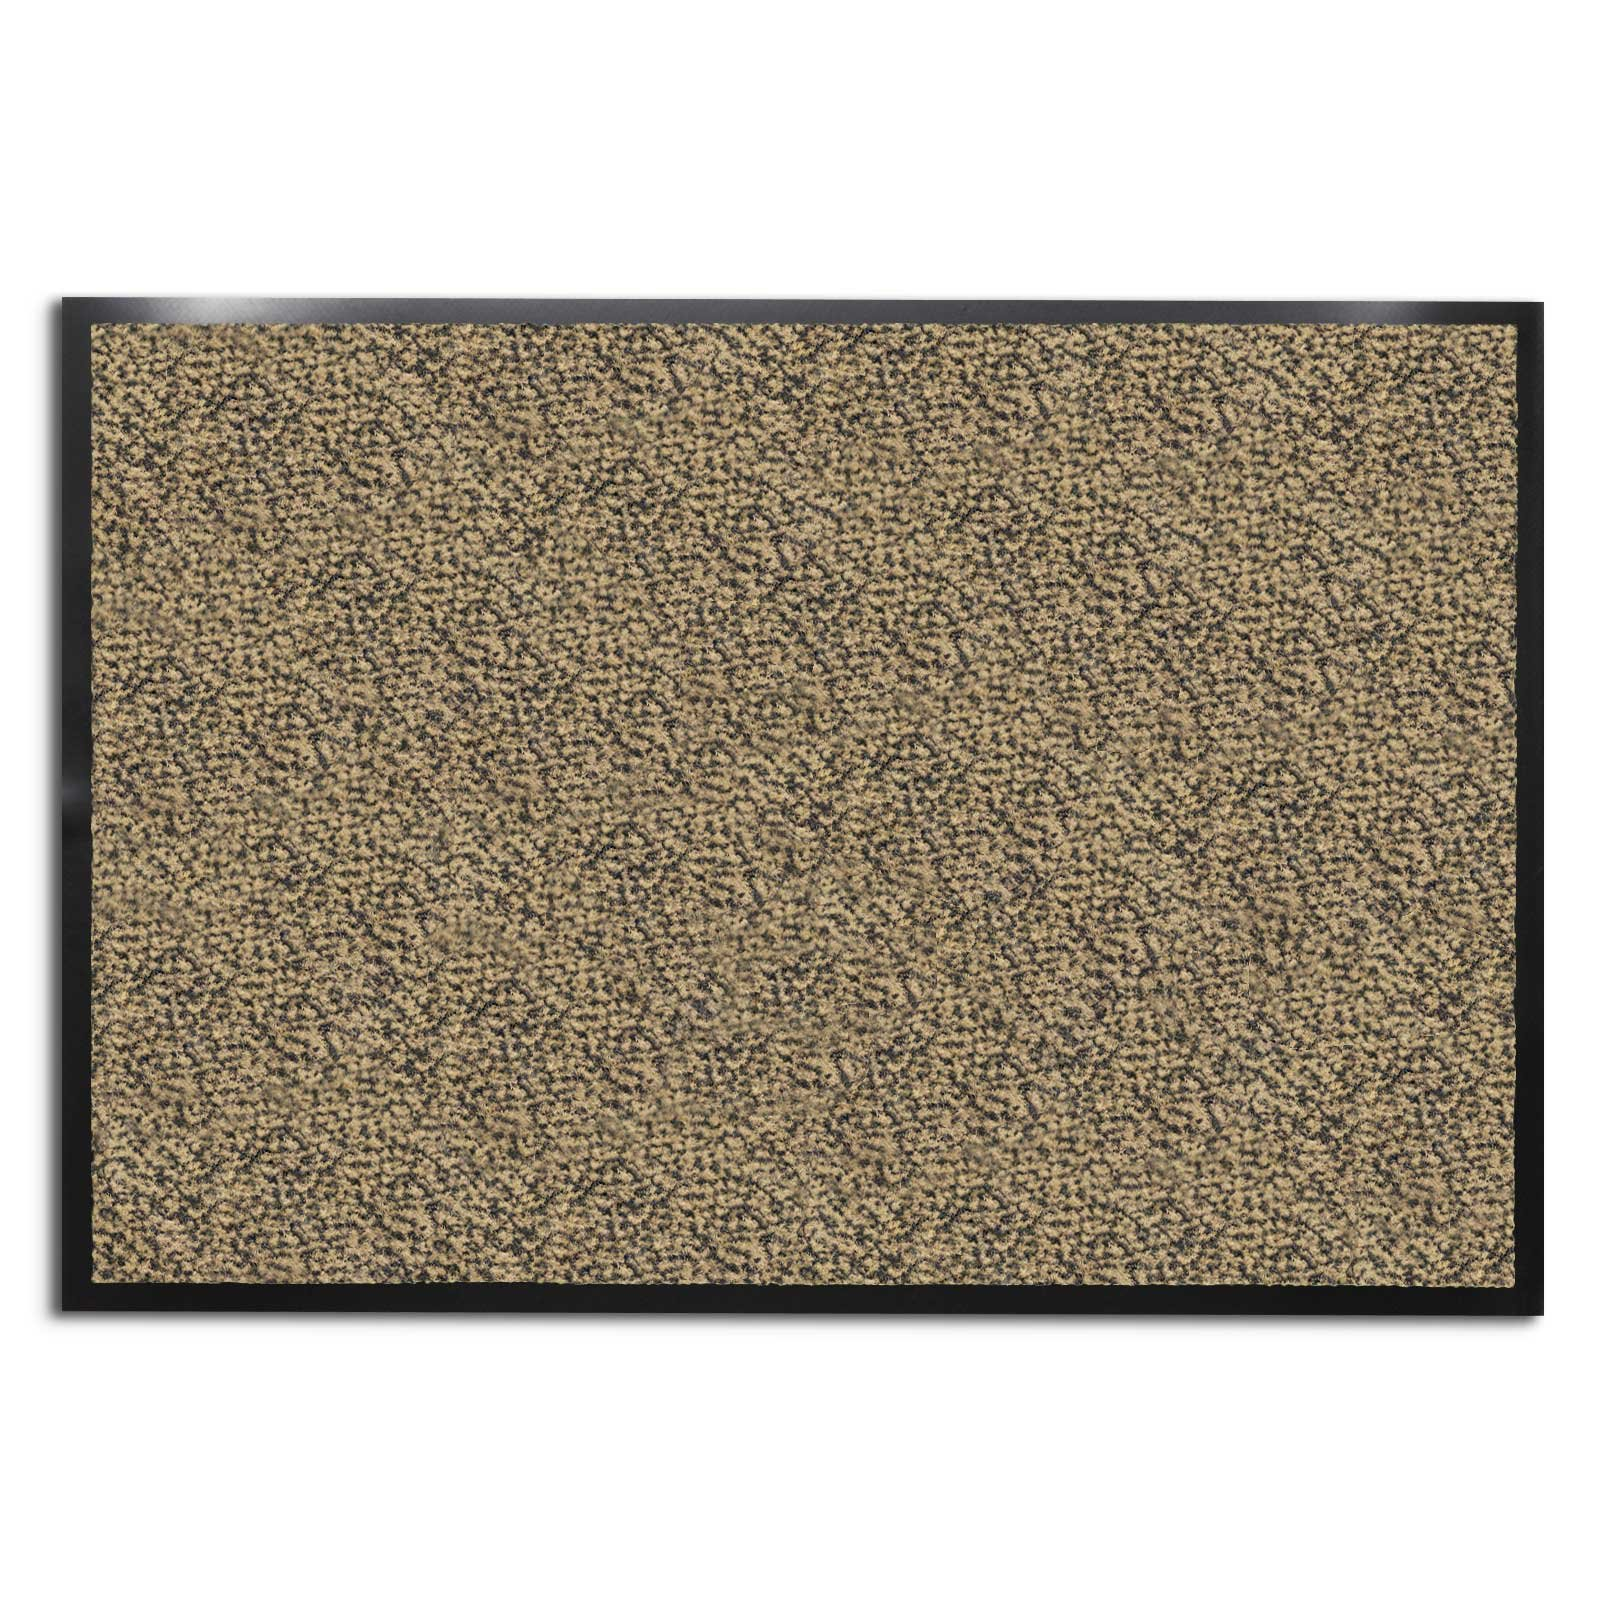 casa pura Carpet Entrance Mat, Beige/Black (Mottled) 48'' x 72'' | Absorbent, Non-slip, Indoor/Outdoor (Multiple Sizes) by casa pura